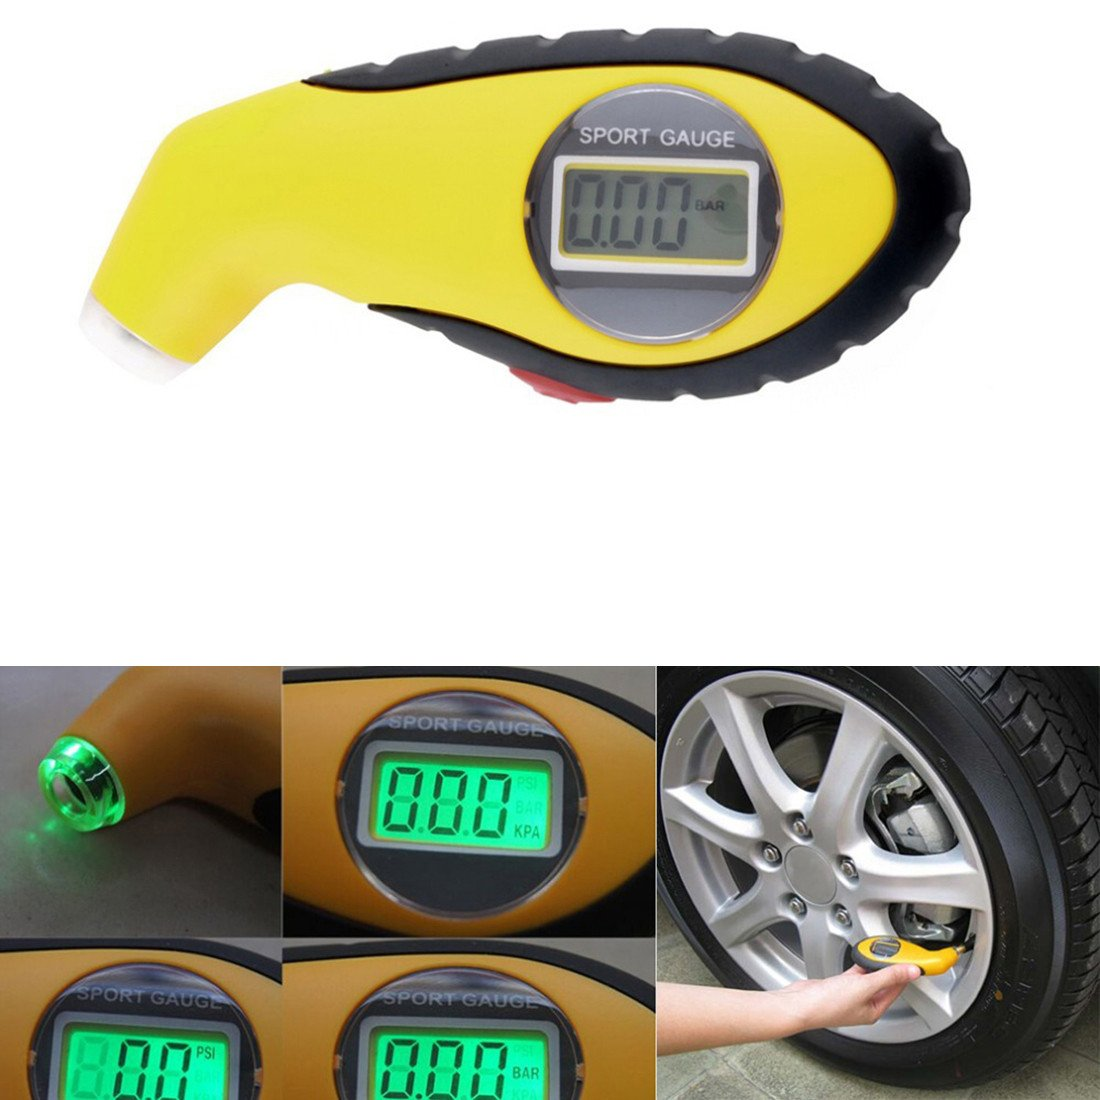 PSI Digital Tire Tyre Air Pressure Gauge Tester Tool For Auto Car Motorcycle PSI KPA BAR